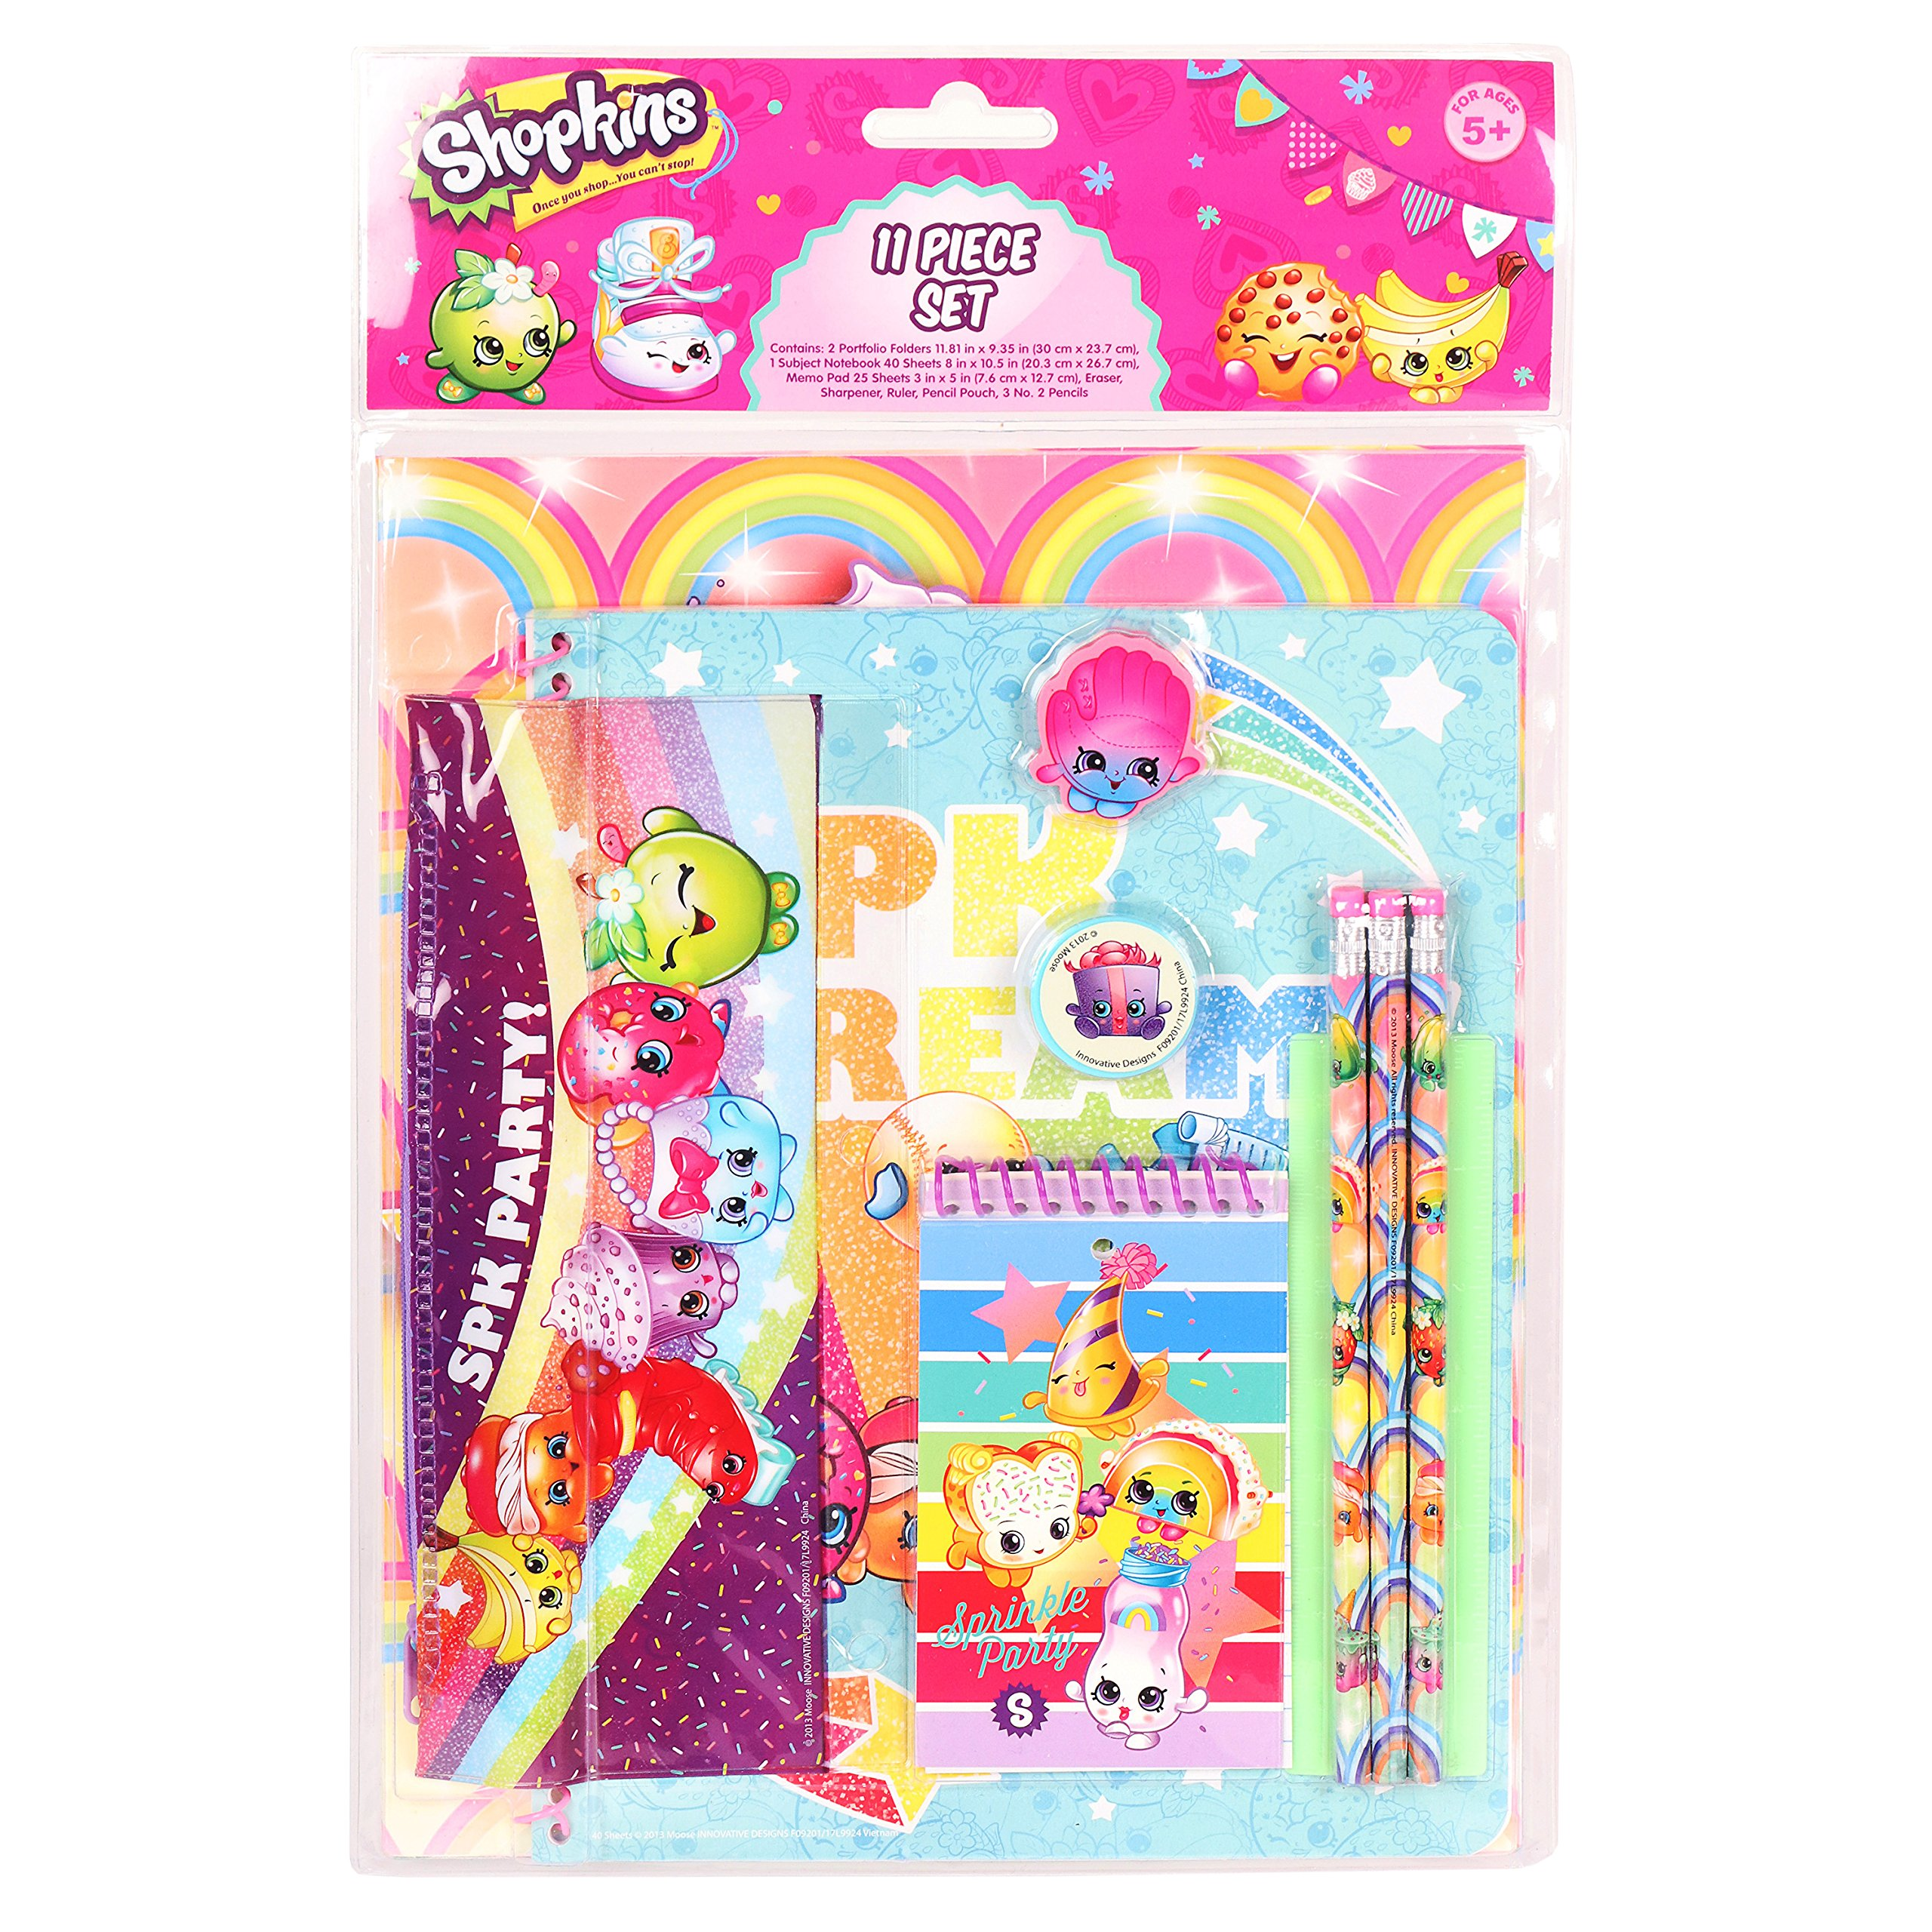 Shopkins Stationery Set School Supplies for Girls / 11 Pieces by Shopkins (Image #1)